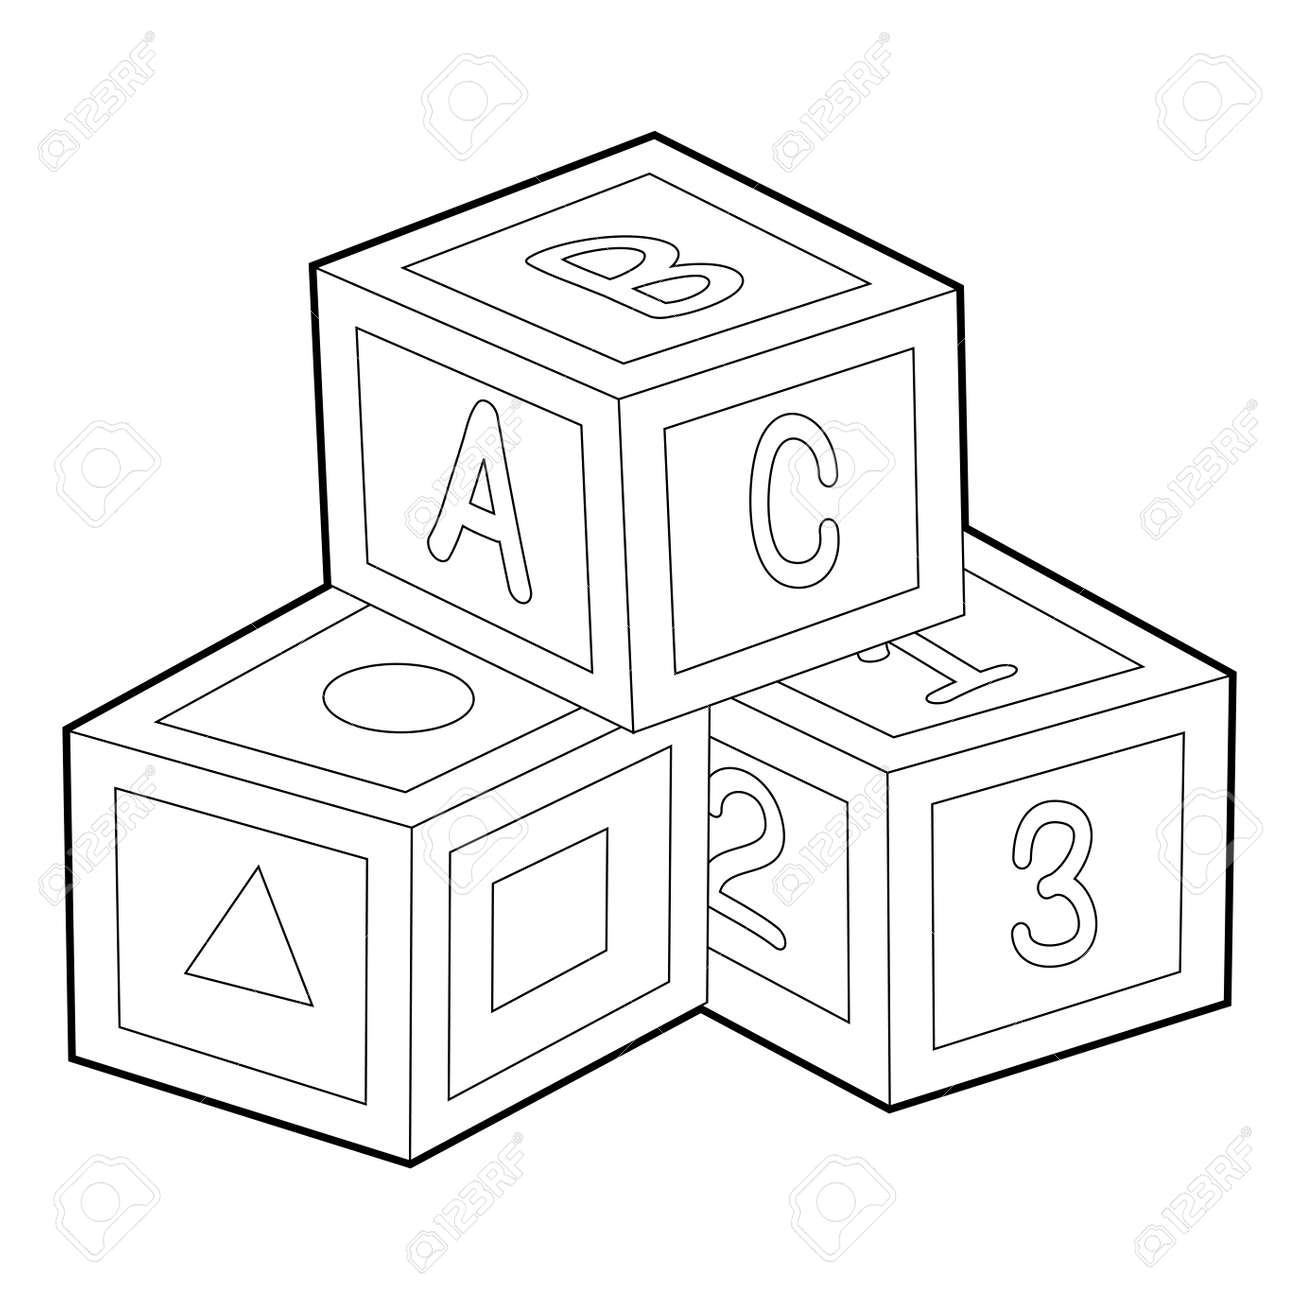 Coloring Book Outline Of Toy Blocks Royalty Free Cliparts Vectors Rh 123rf Com